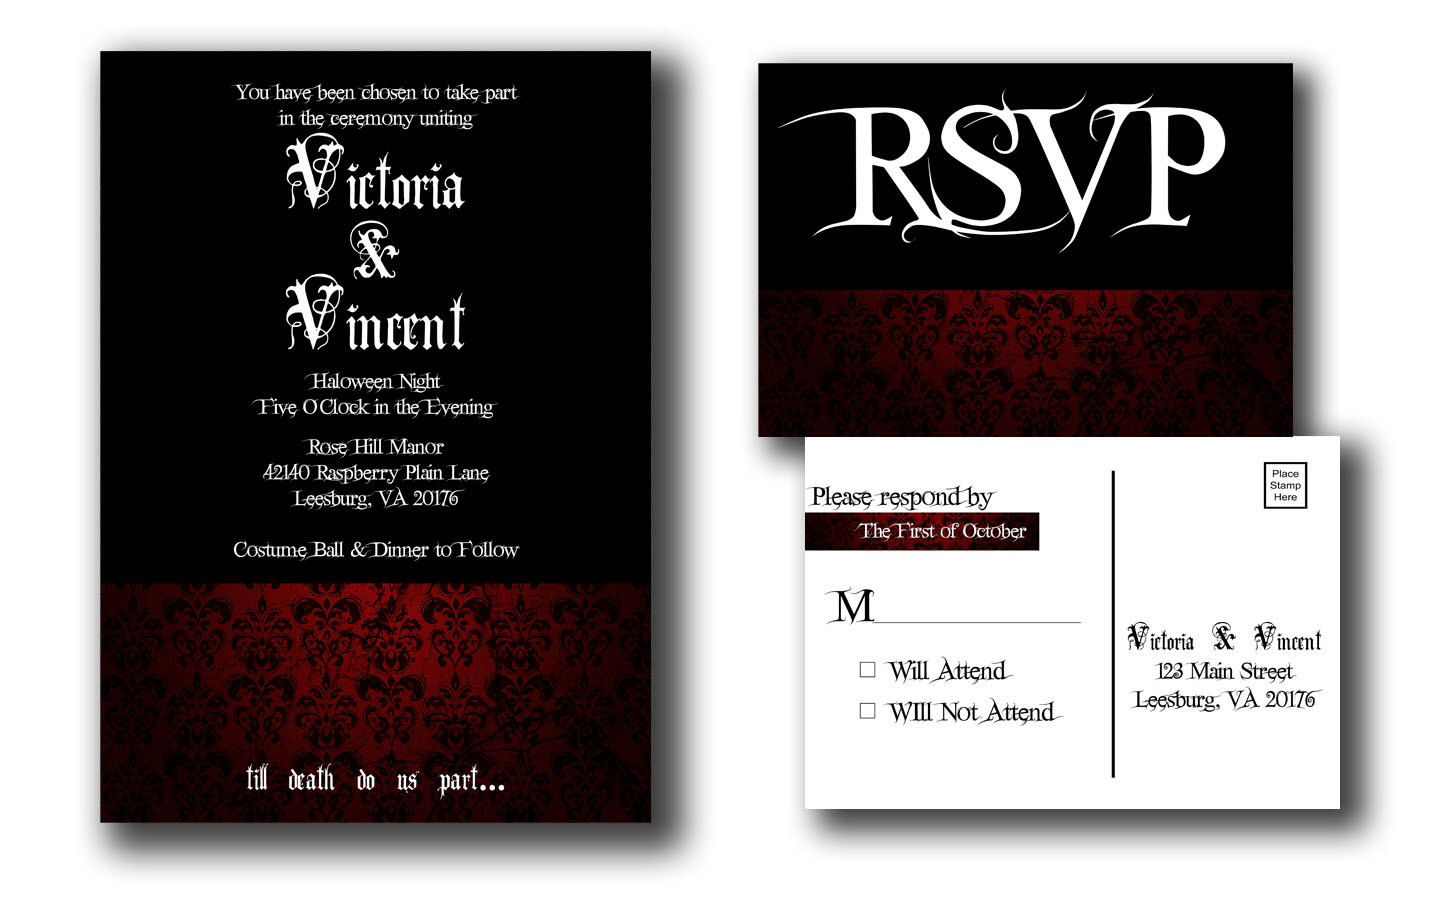 Gothic Till Death Do Us Part Damask Wedding Invitation Set Made to Order Goth Wedding Horror Wedding Halloween Wedding Dark Wedding by lunabstudio on Etsy https://www.etsy.com/listing/189366405/gothic-till-death-do-us-part-damask